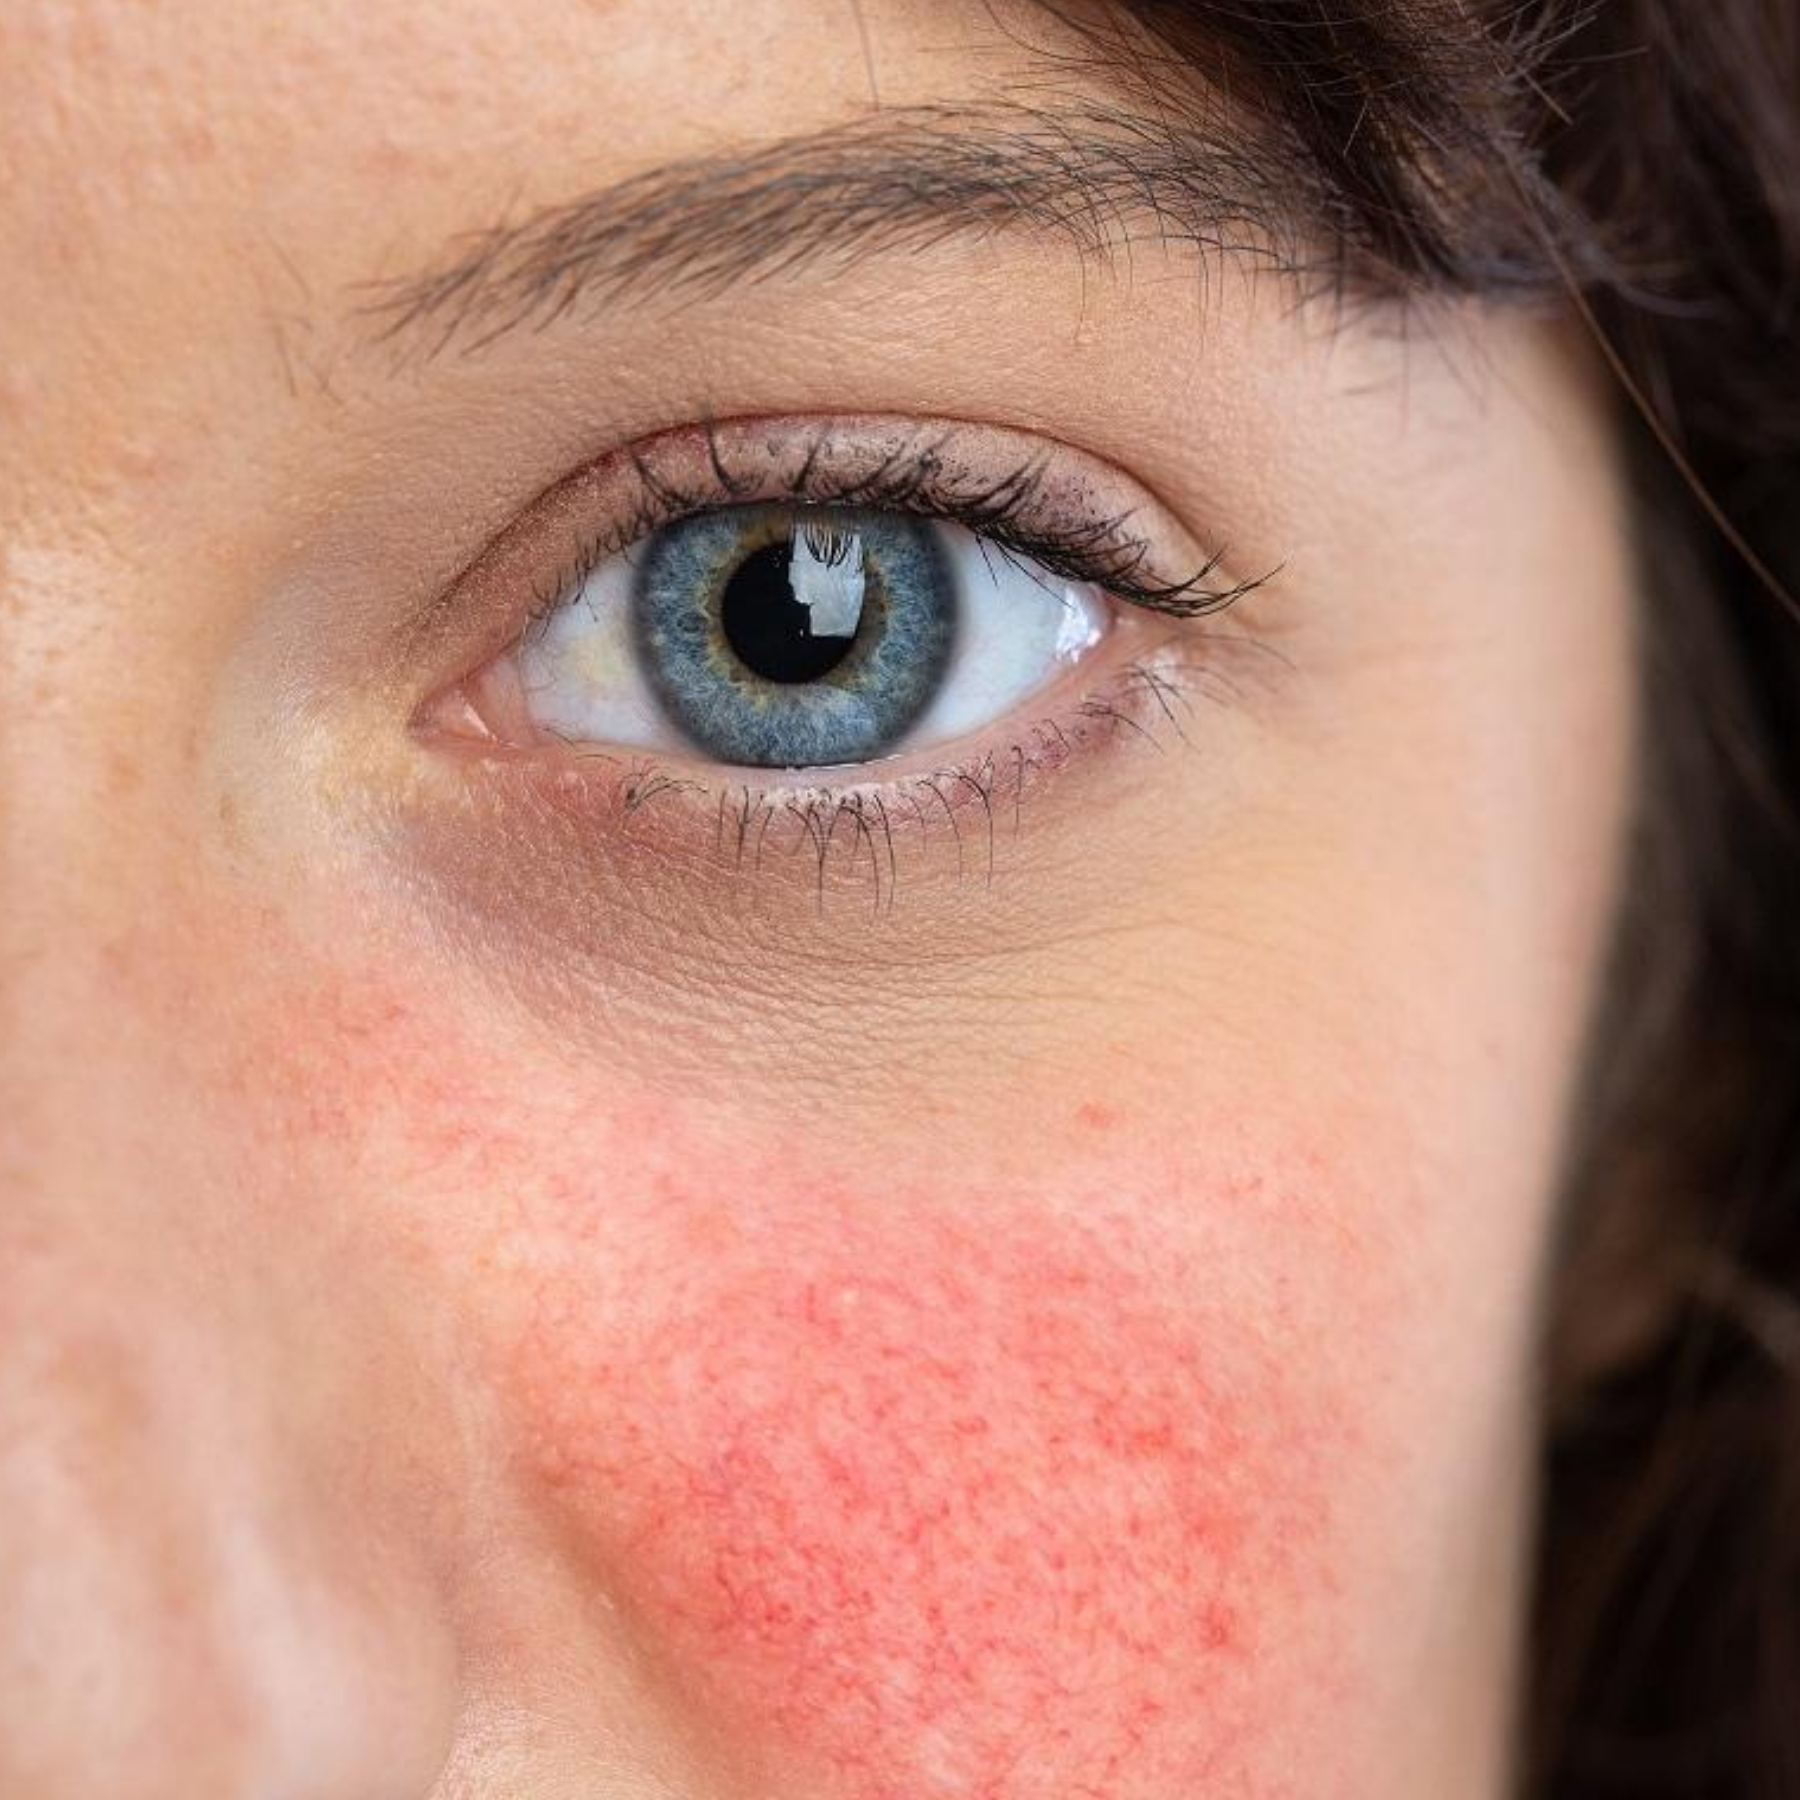 How To Help Manage Rosacea: 6 Superb Skincare Tips